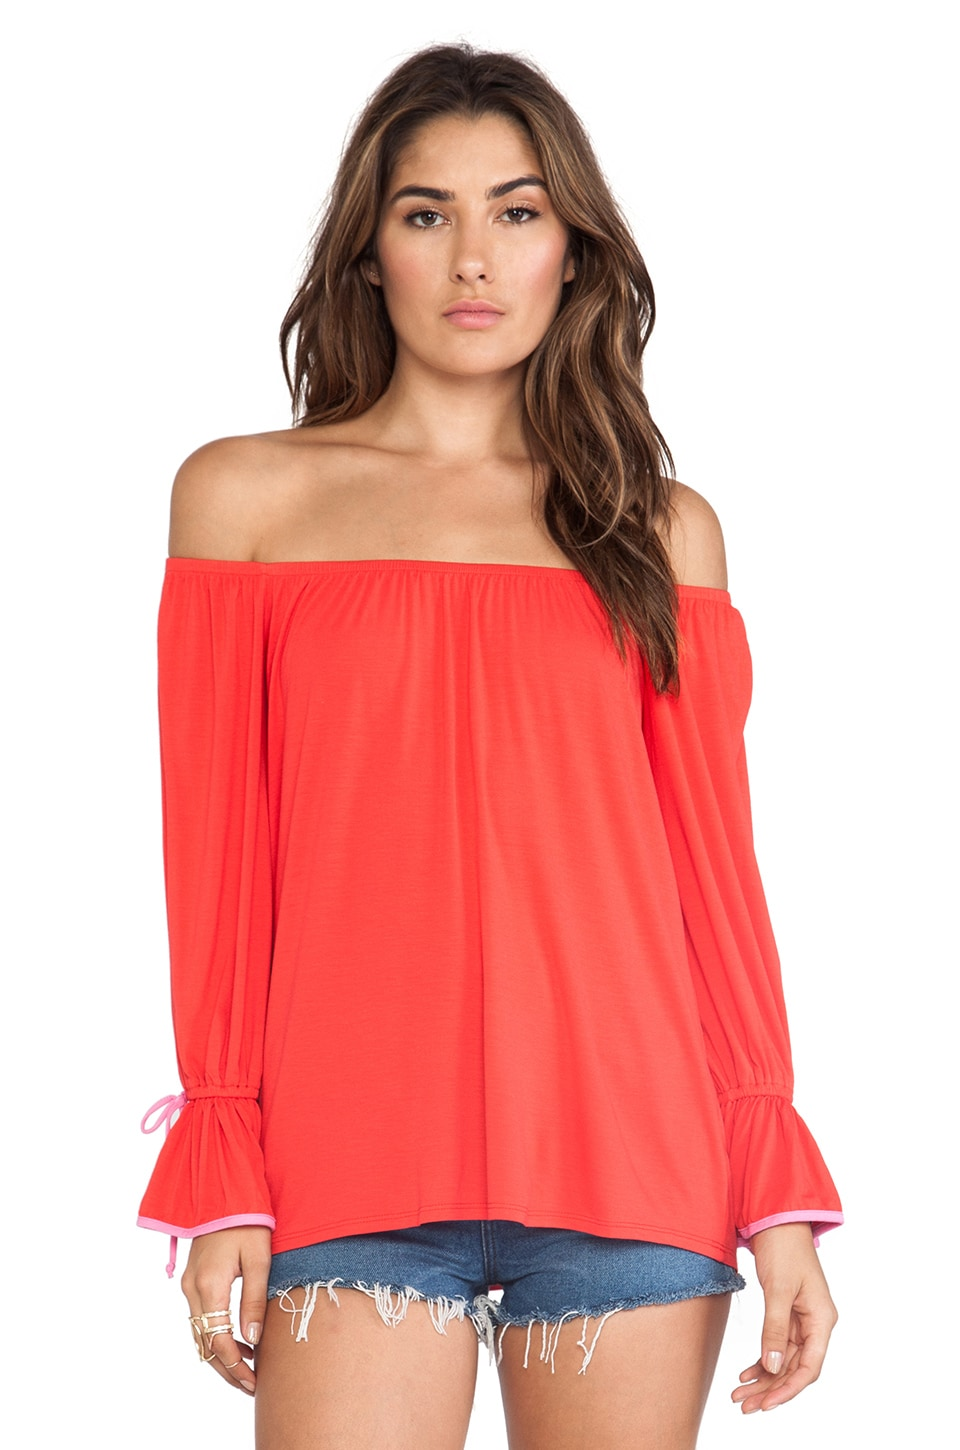 James & Joy Angelina Top in Dark Orange